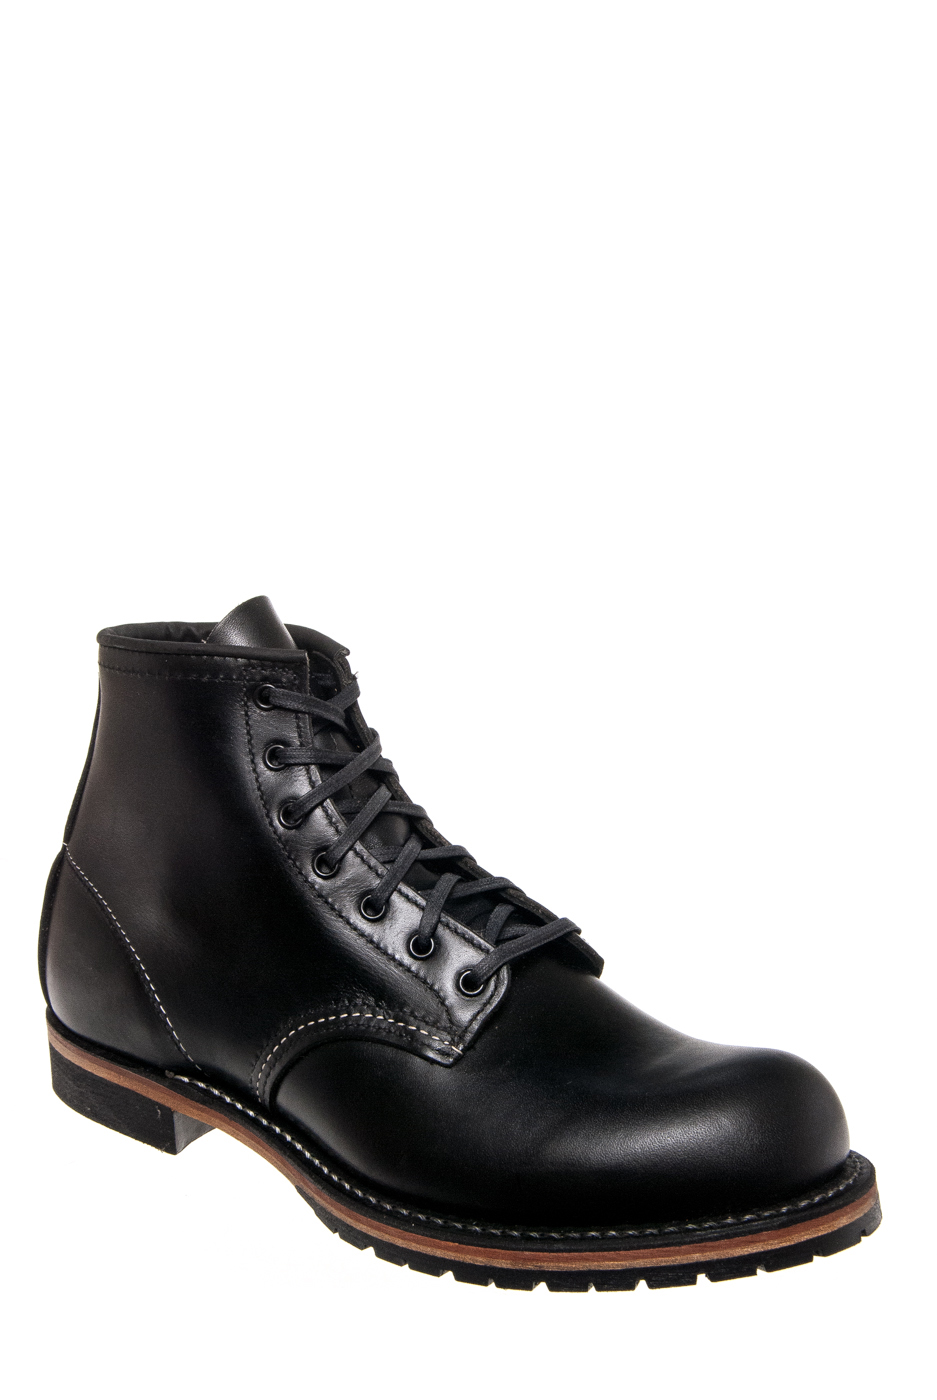 Red Wing 9019 Ankle Boots - Black